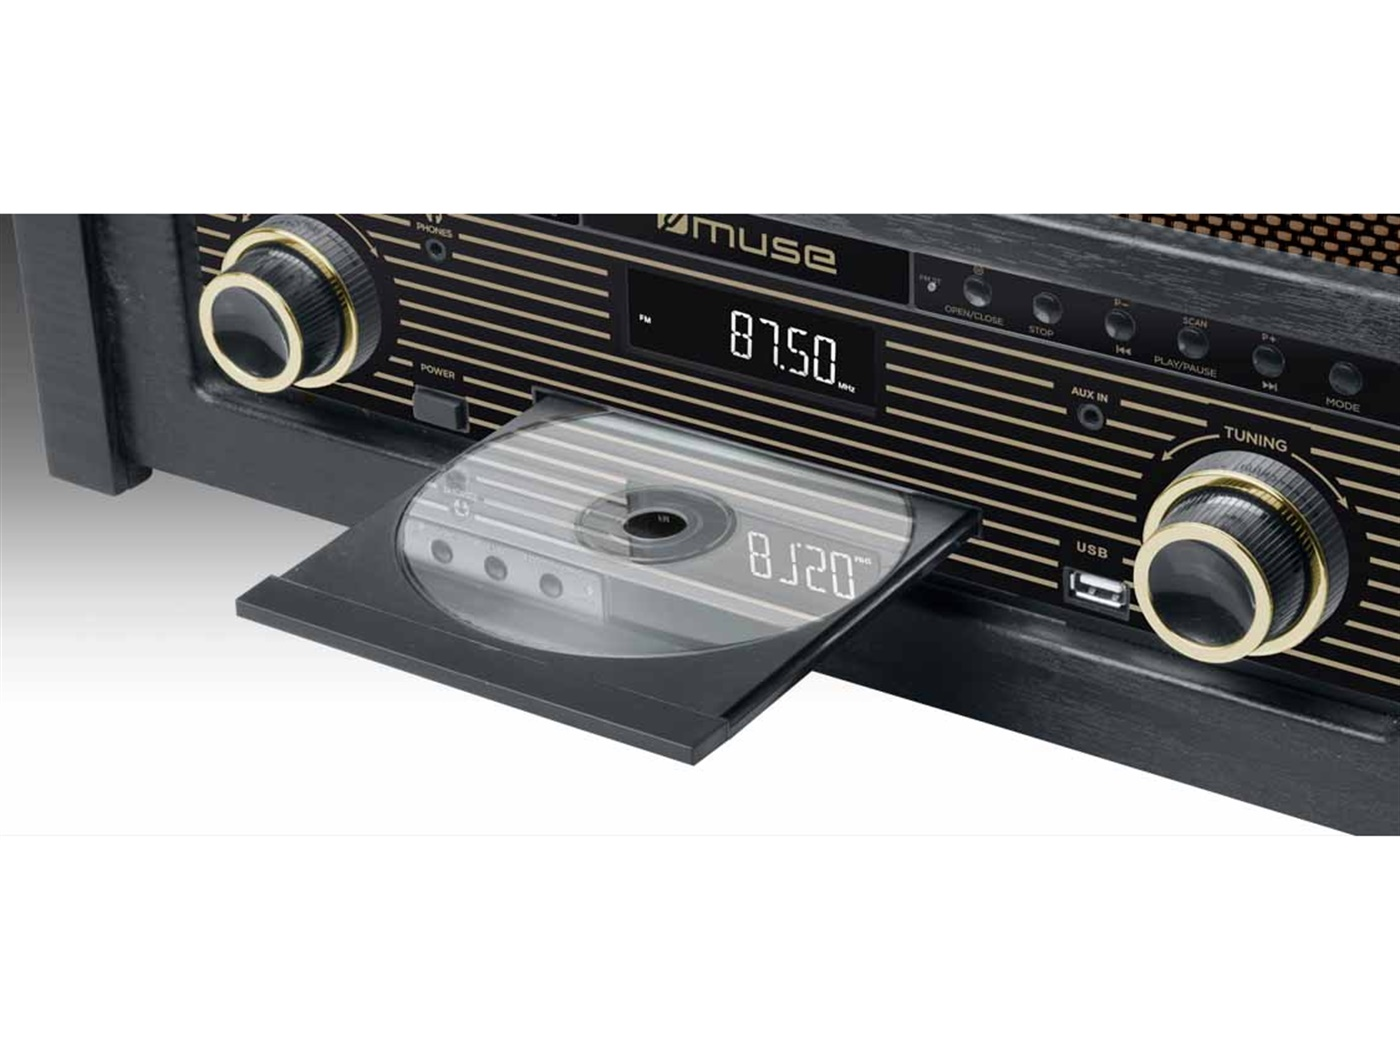 autoradio  gramofon  muse   m t   1 1 5w  cd